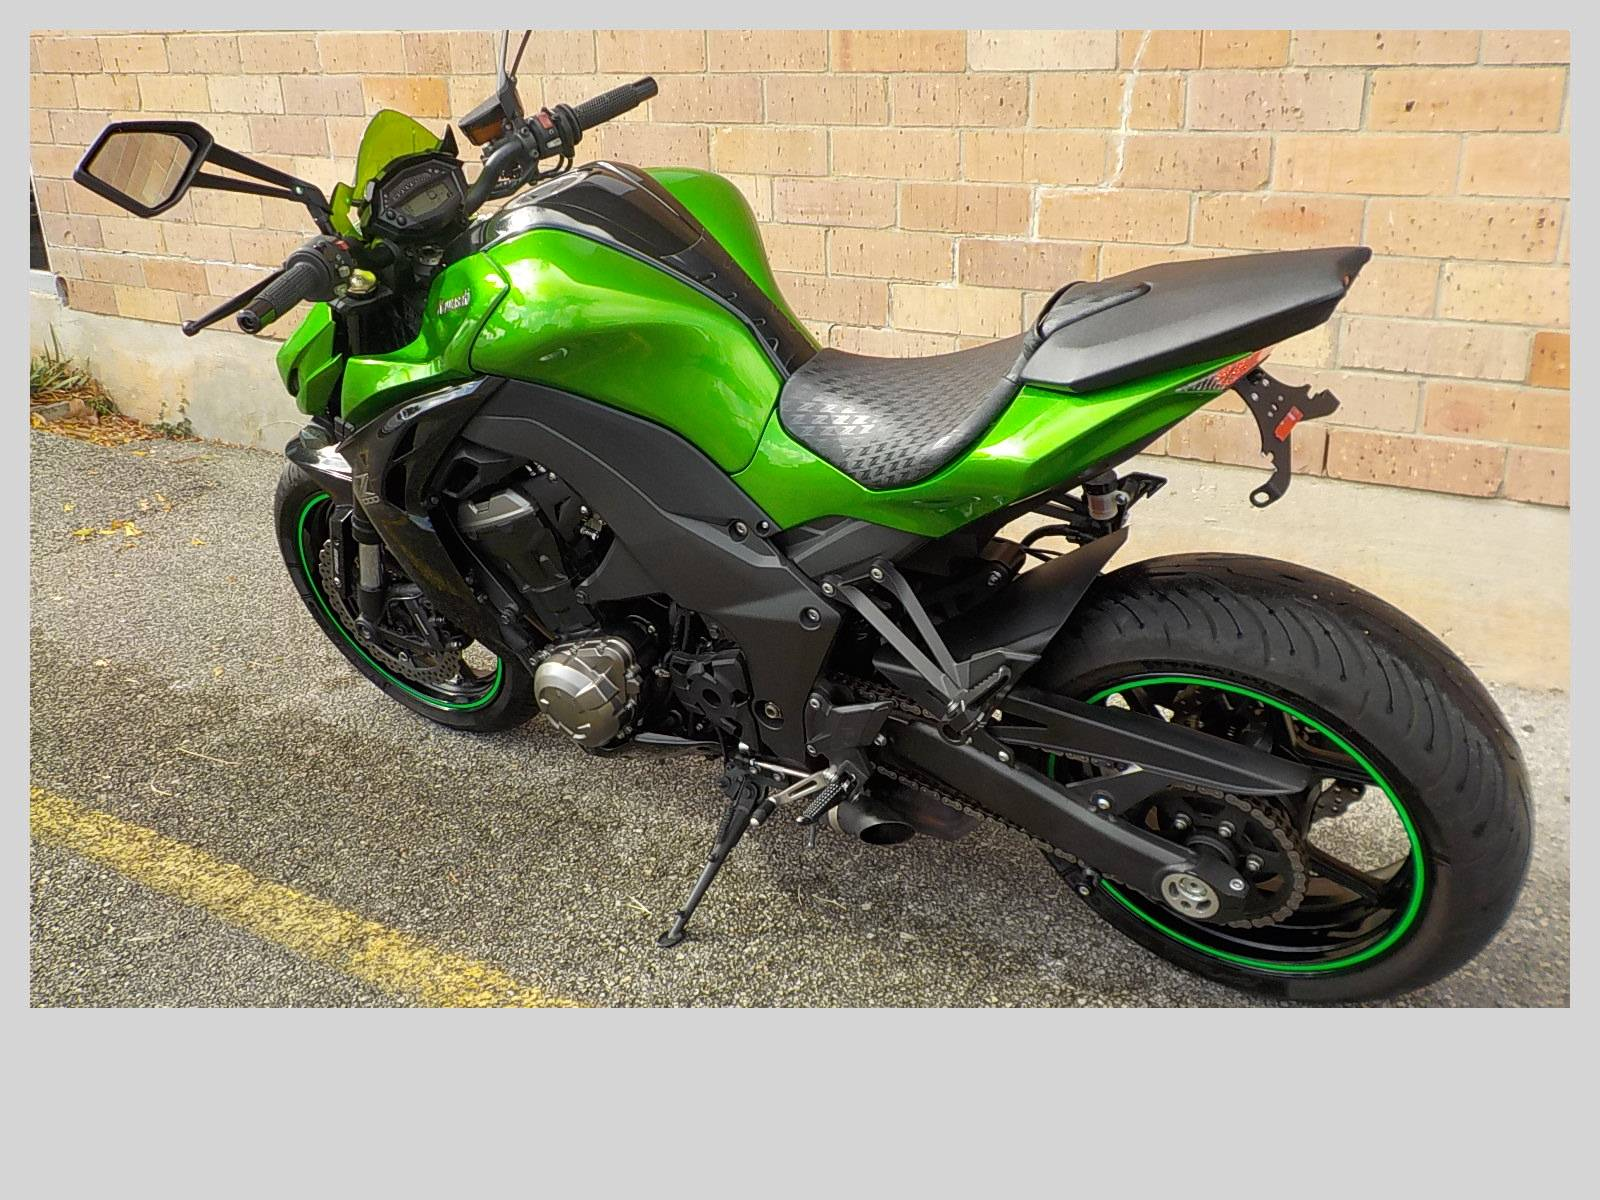 2015 Kawasaki Z1000 ABS in San Antonio, Texas - Photo 6